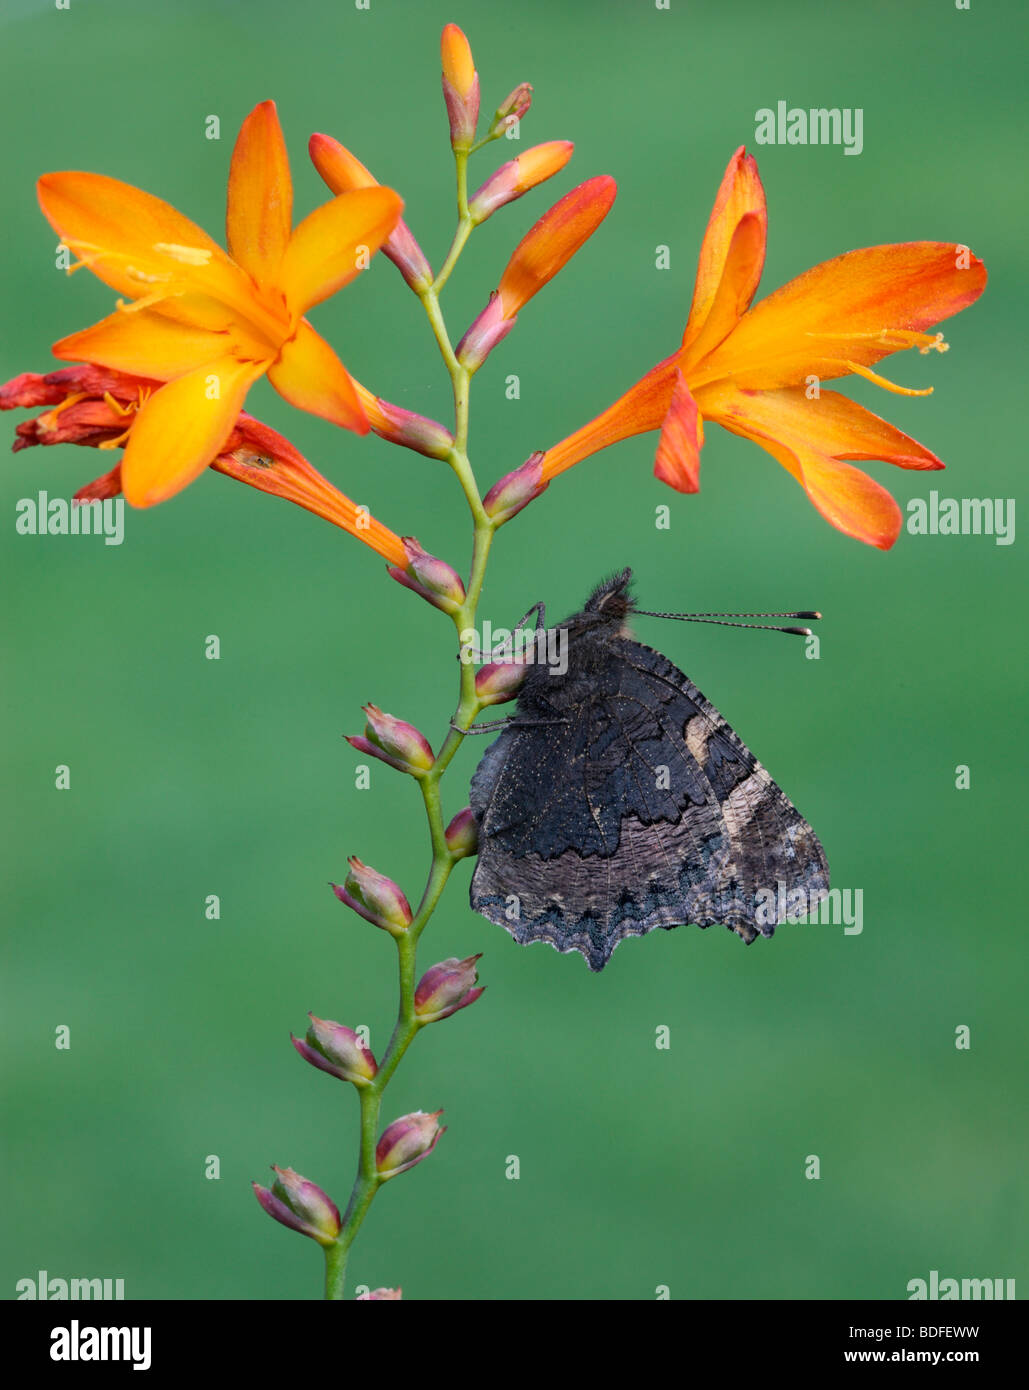 Small tortoiseshell butterfly, Aglais urticae, Midlands, August 2009 - Stock Image